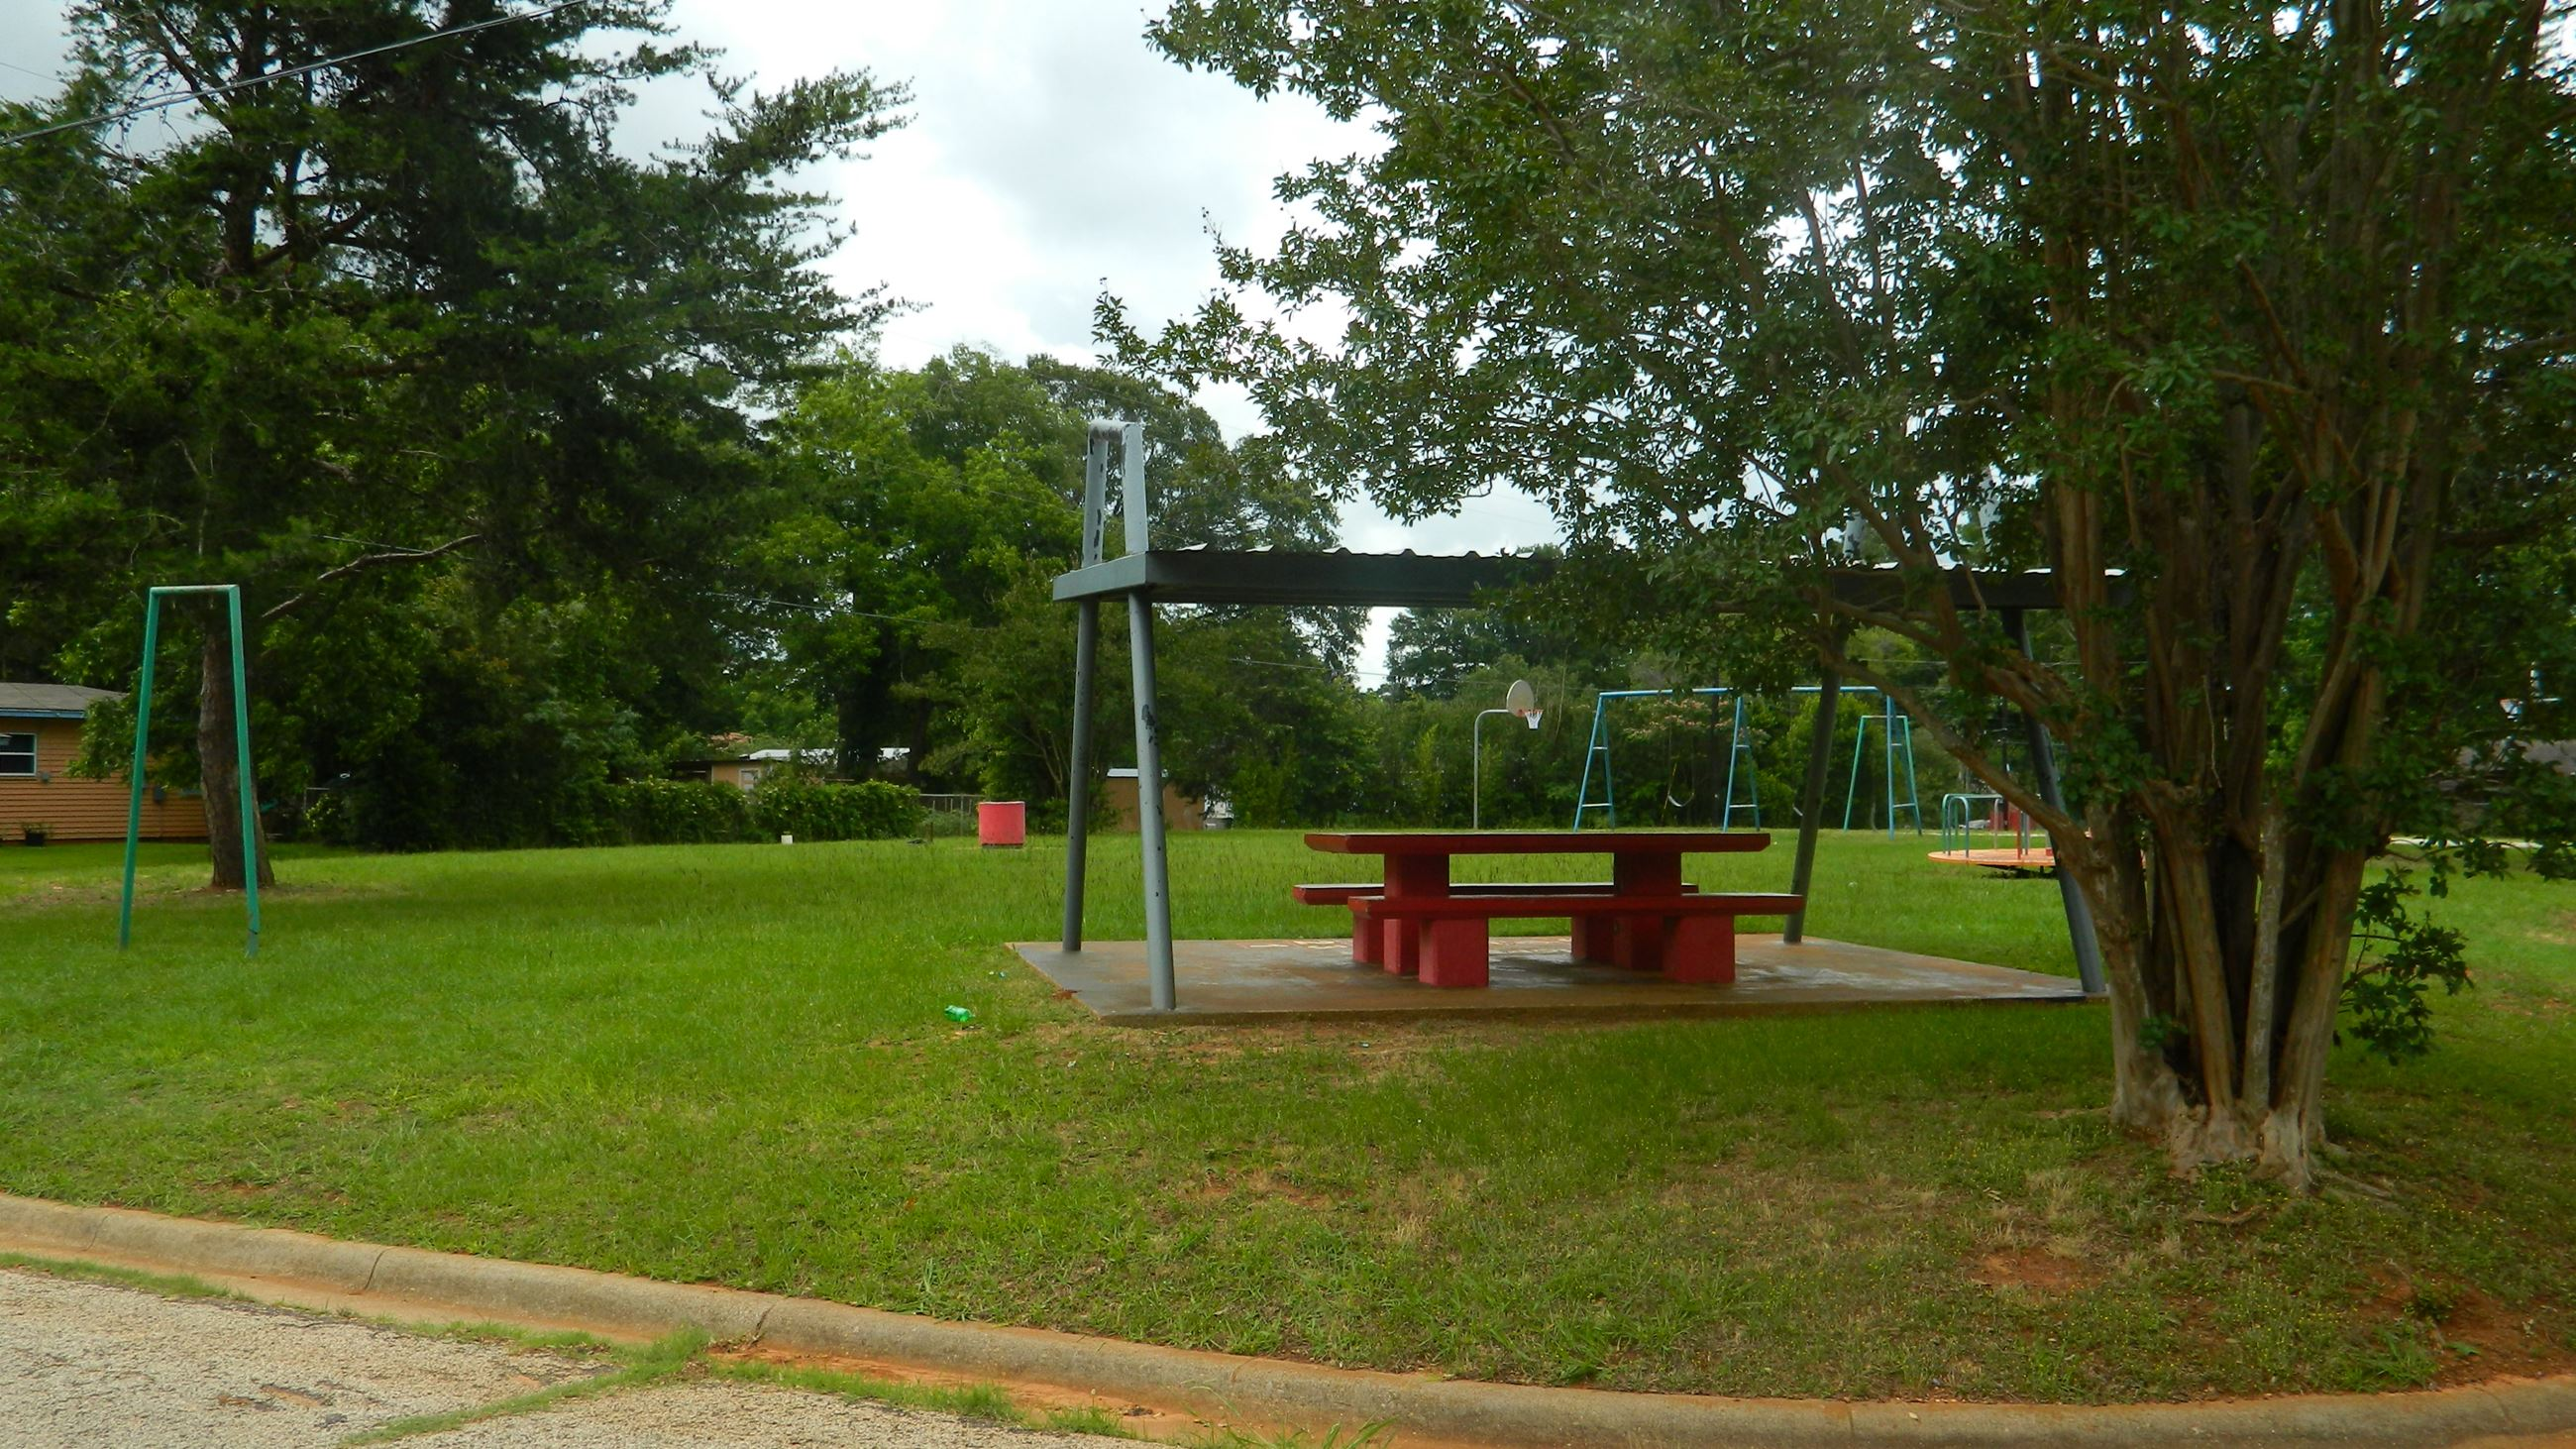 A Shelter with Benches at Loves Park Playground